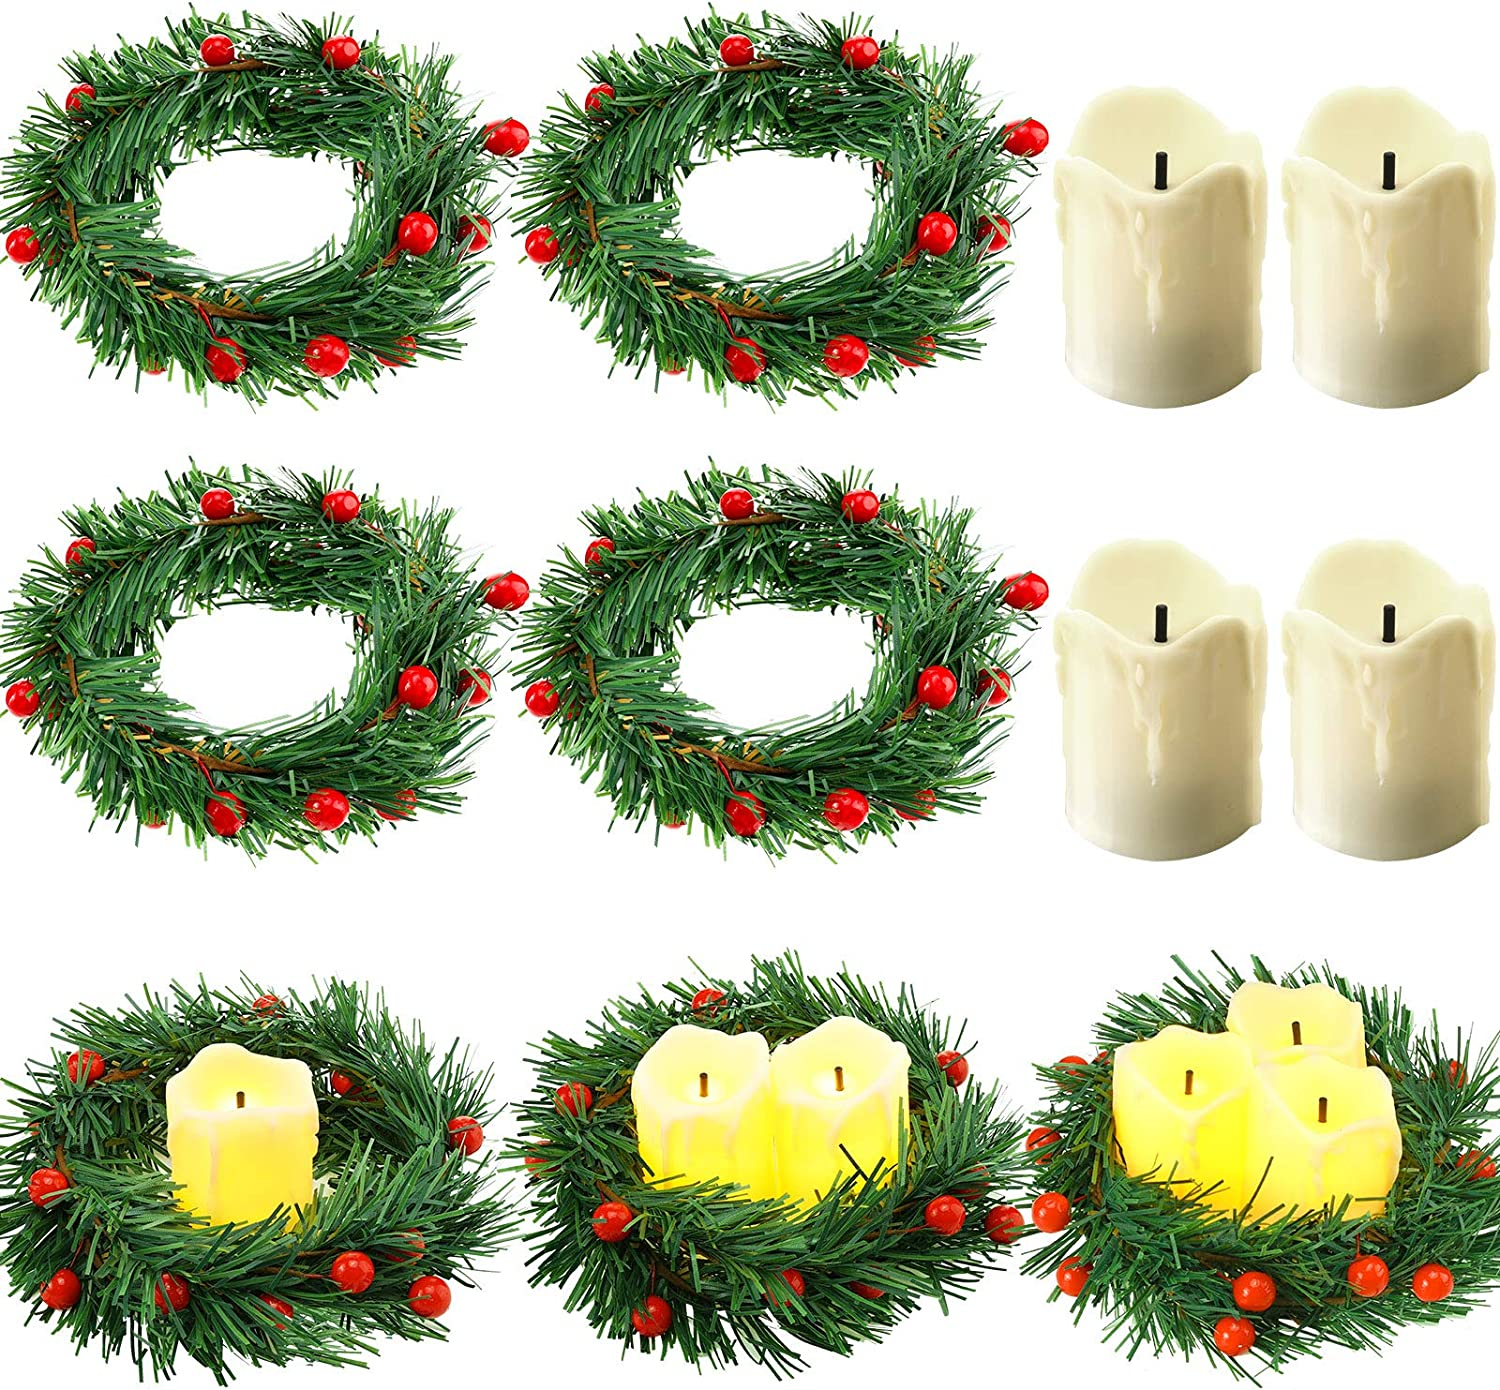 8 Pieces Christmas Candle Rings Set, Including 4 Pieces Artifici